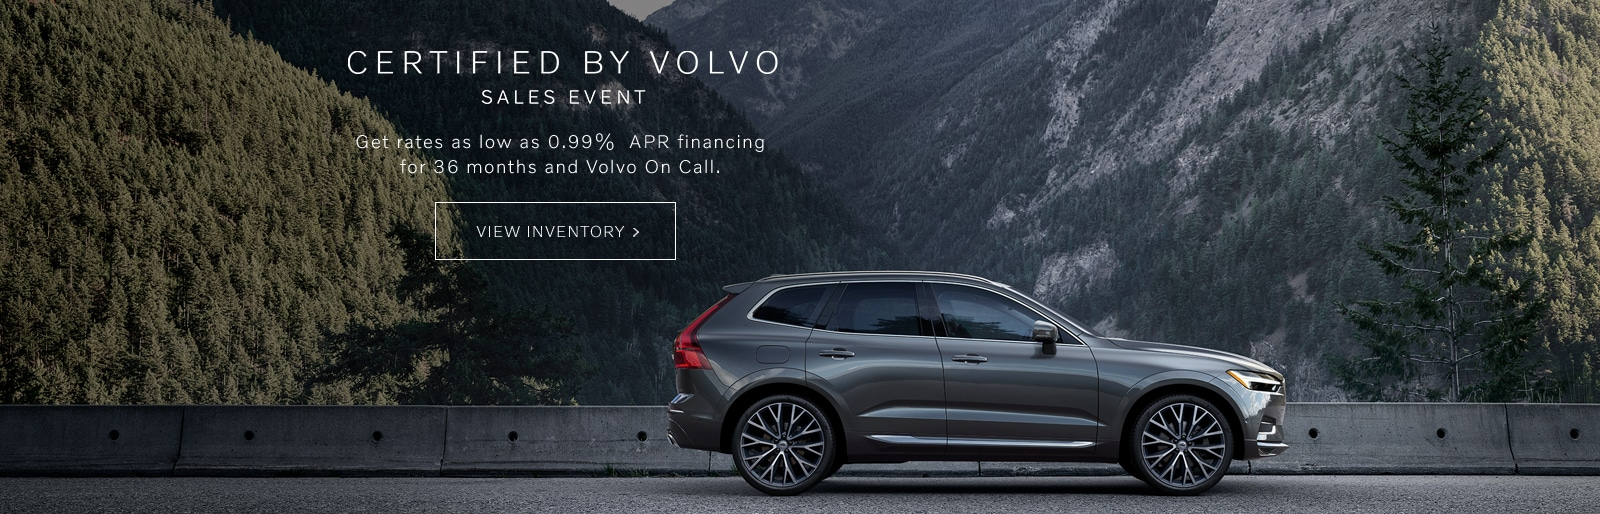 Volvo Dealers Nh >> Volvo Cars Of Exeter New Volvo Used Car Dealership Near Dover Nh